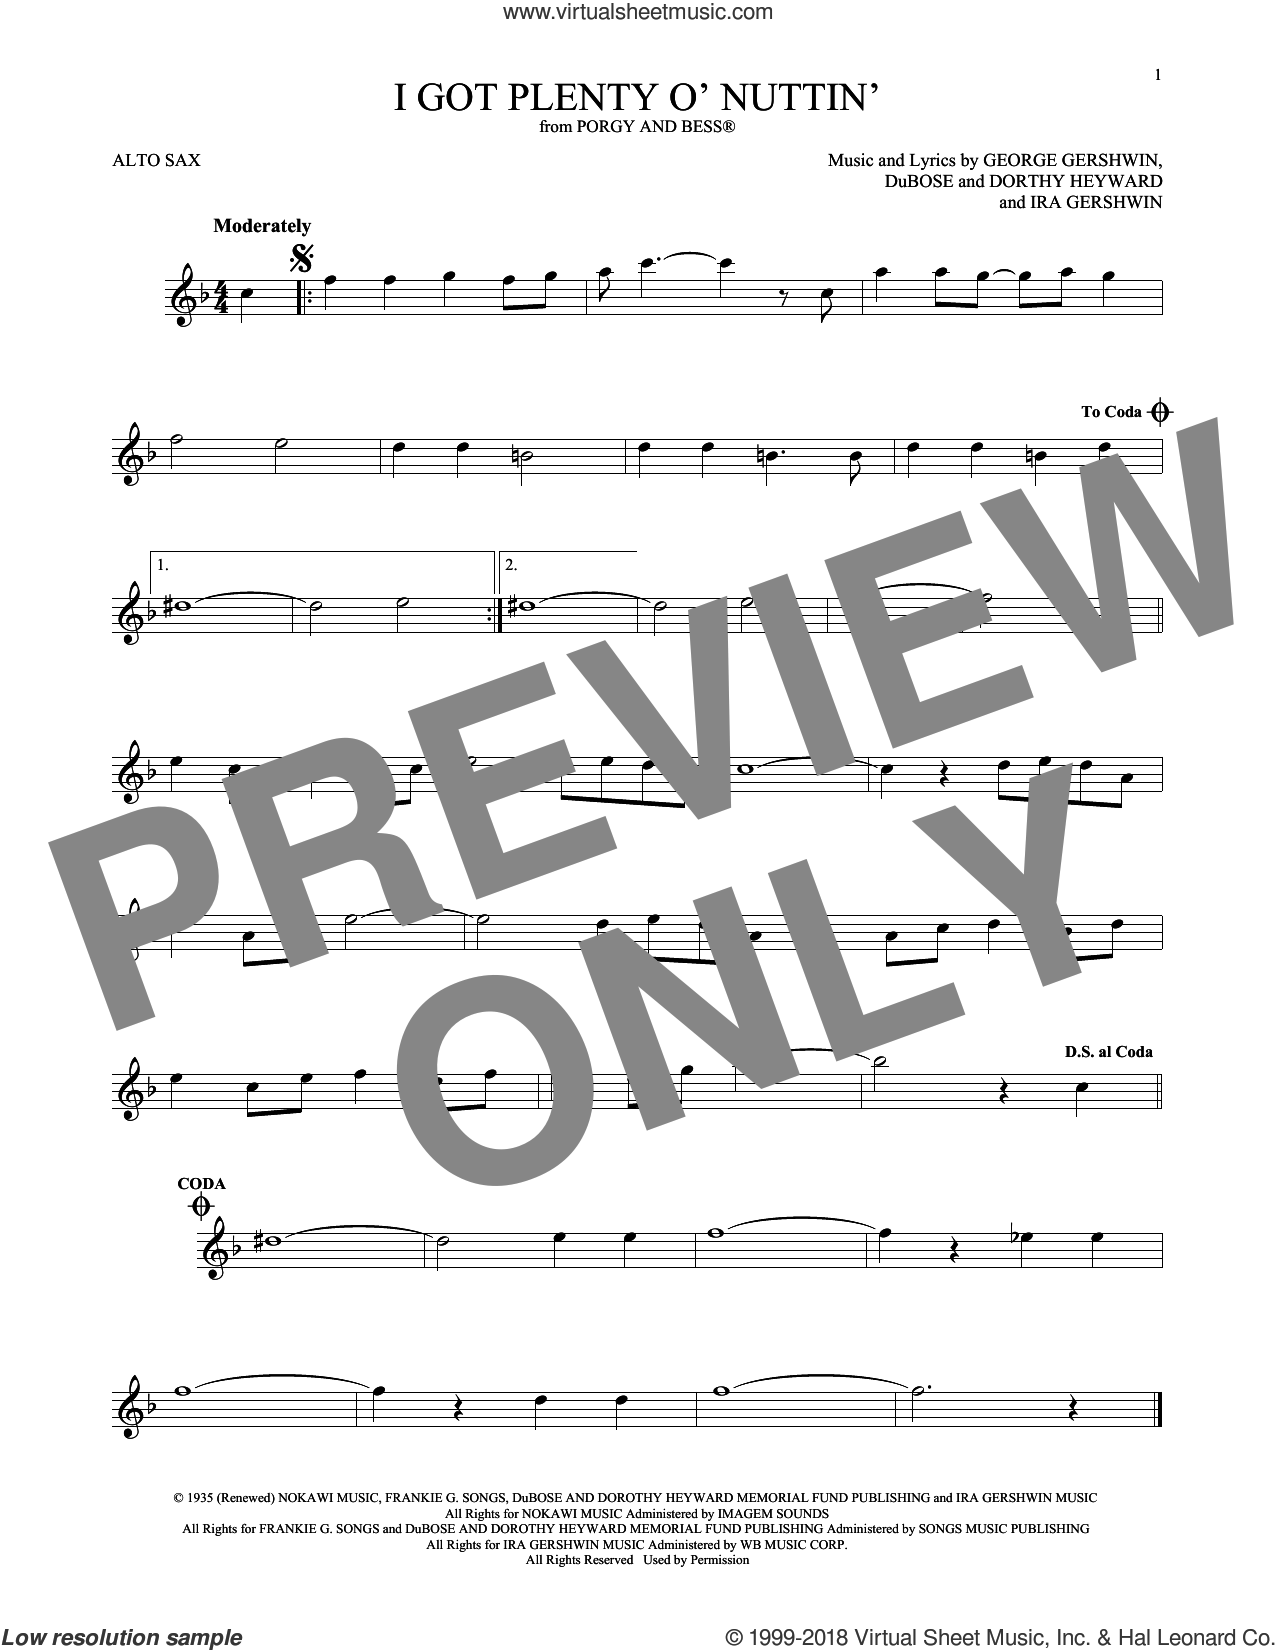 I Got Plenty O' Nuttin' sheet music for alto saxophone solo by George Gershwin, Dorothy Heyward, DuBose Heyward and Ira Gershwin, intermediate skill level